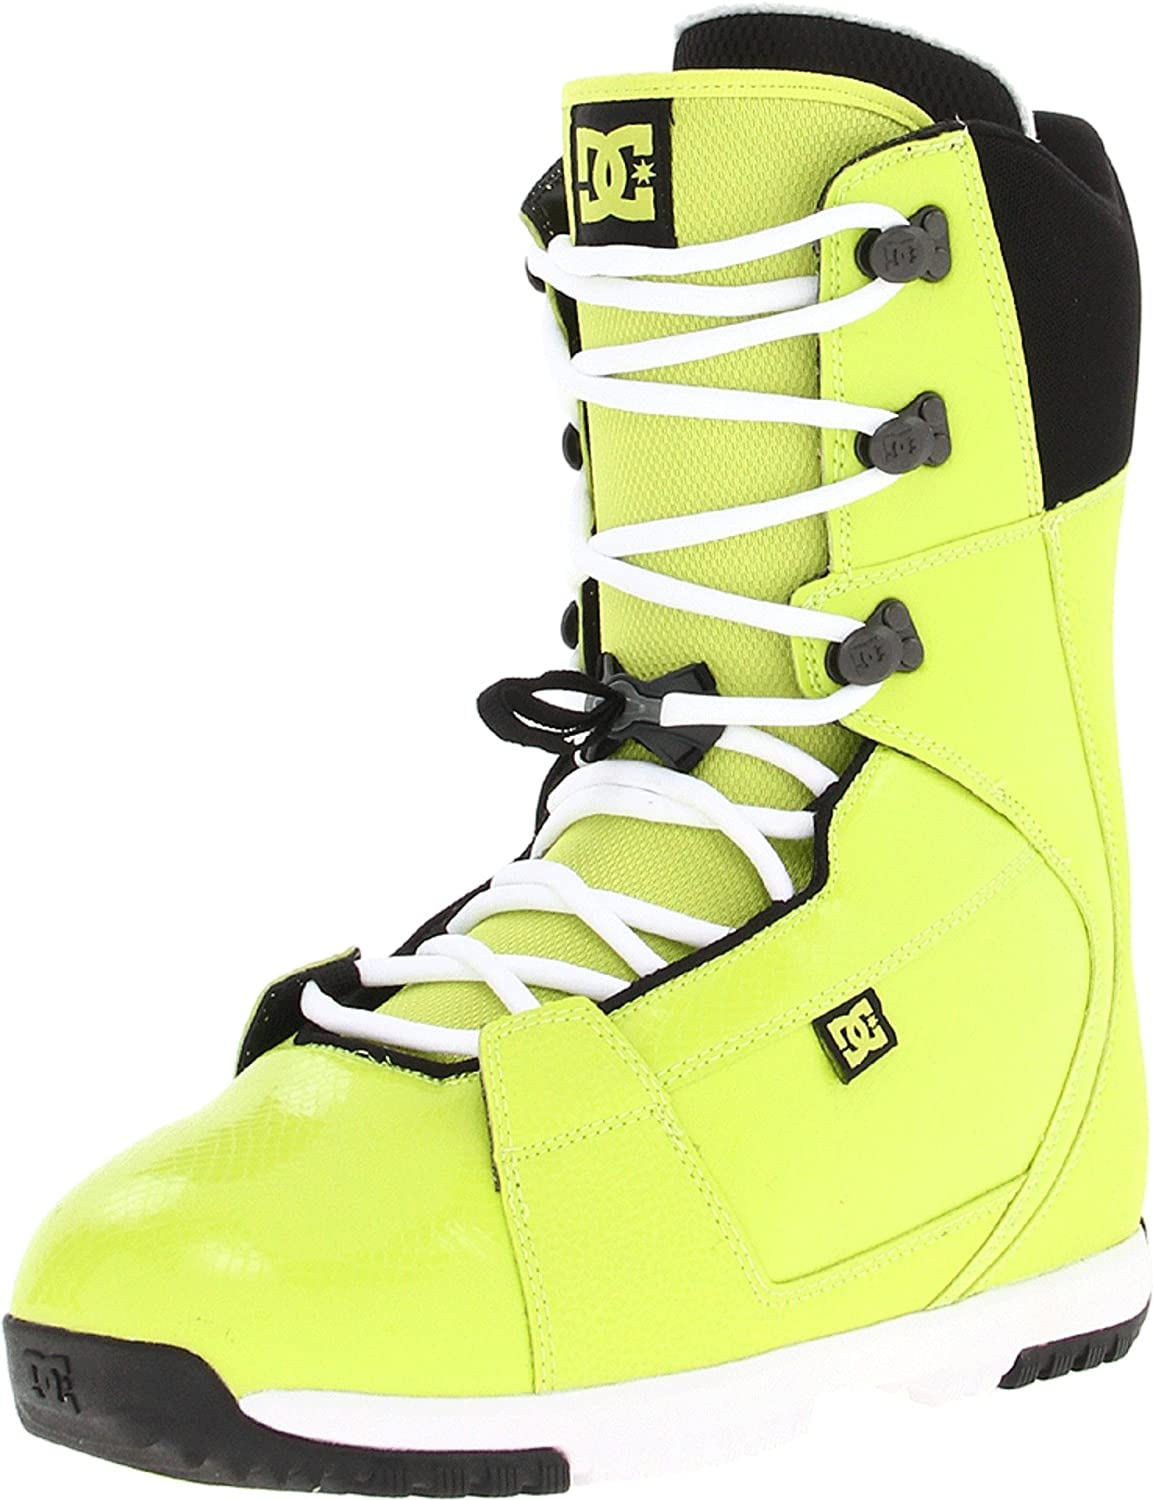 DC Men's Park Boot 13 Snow Boot